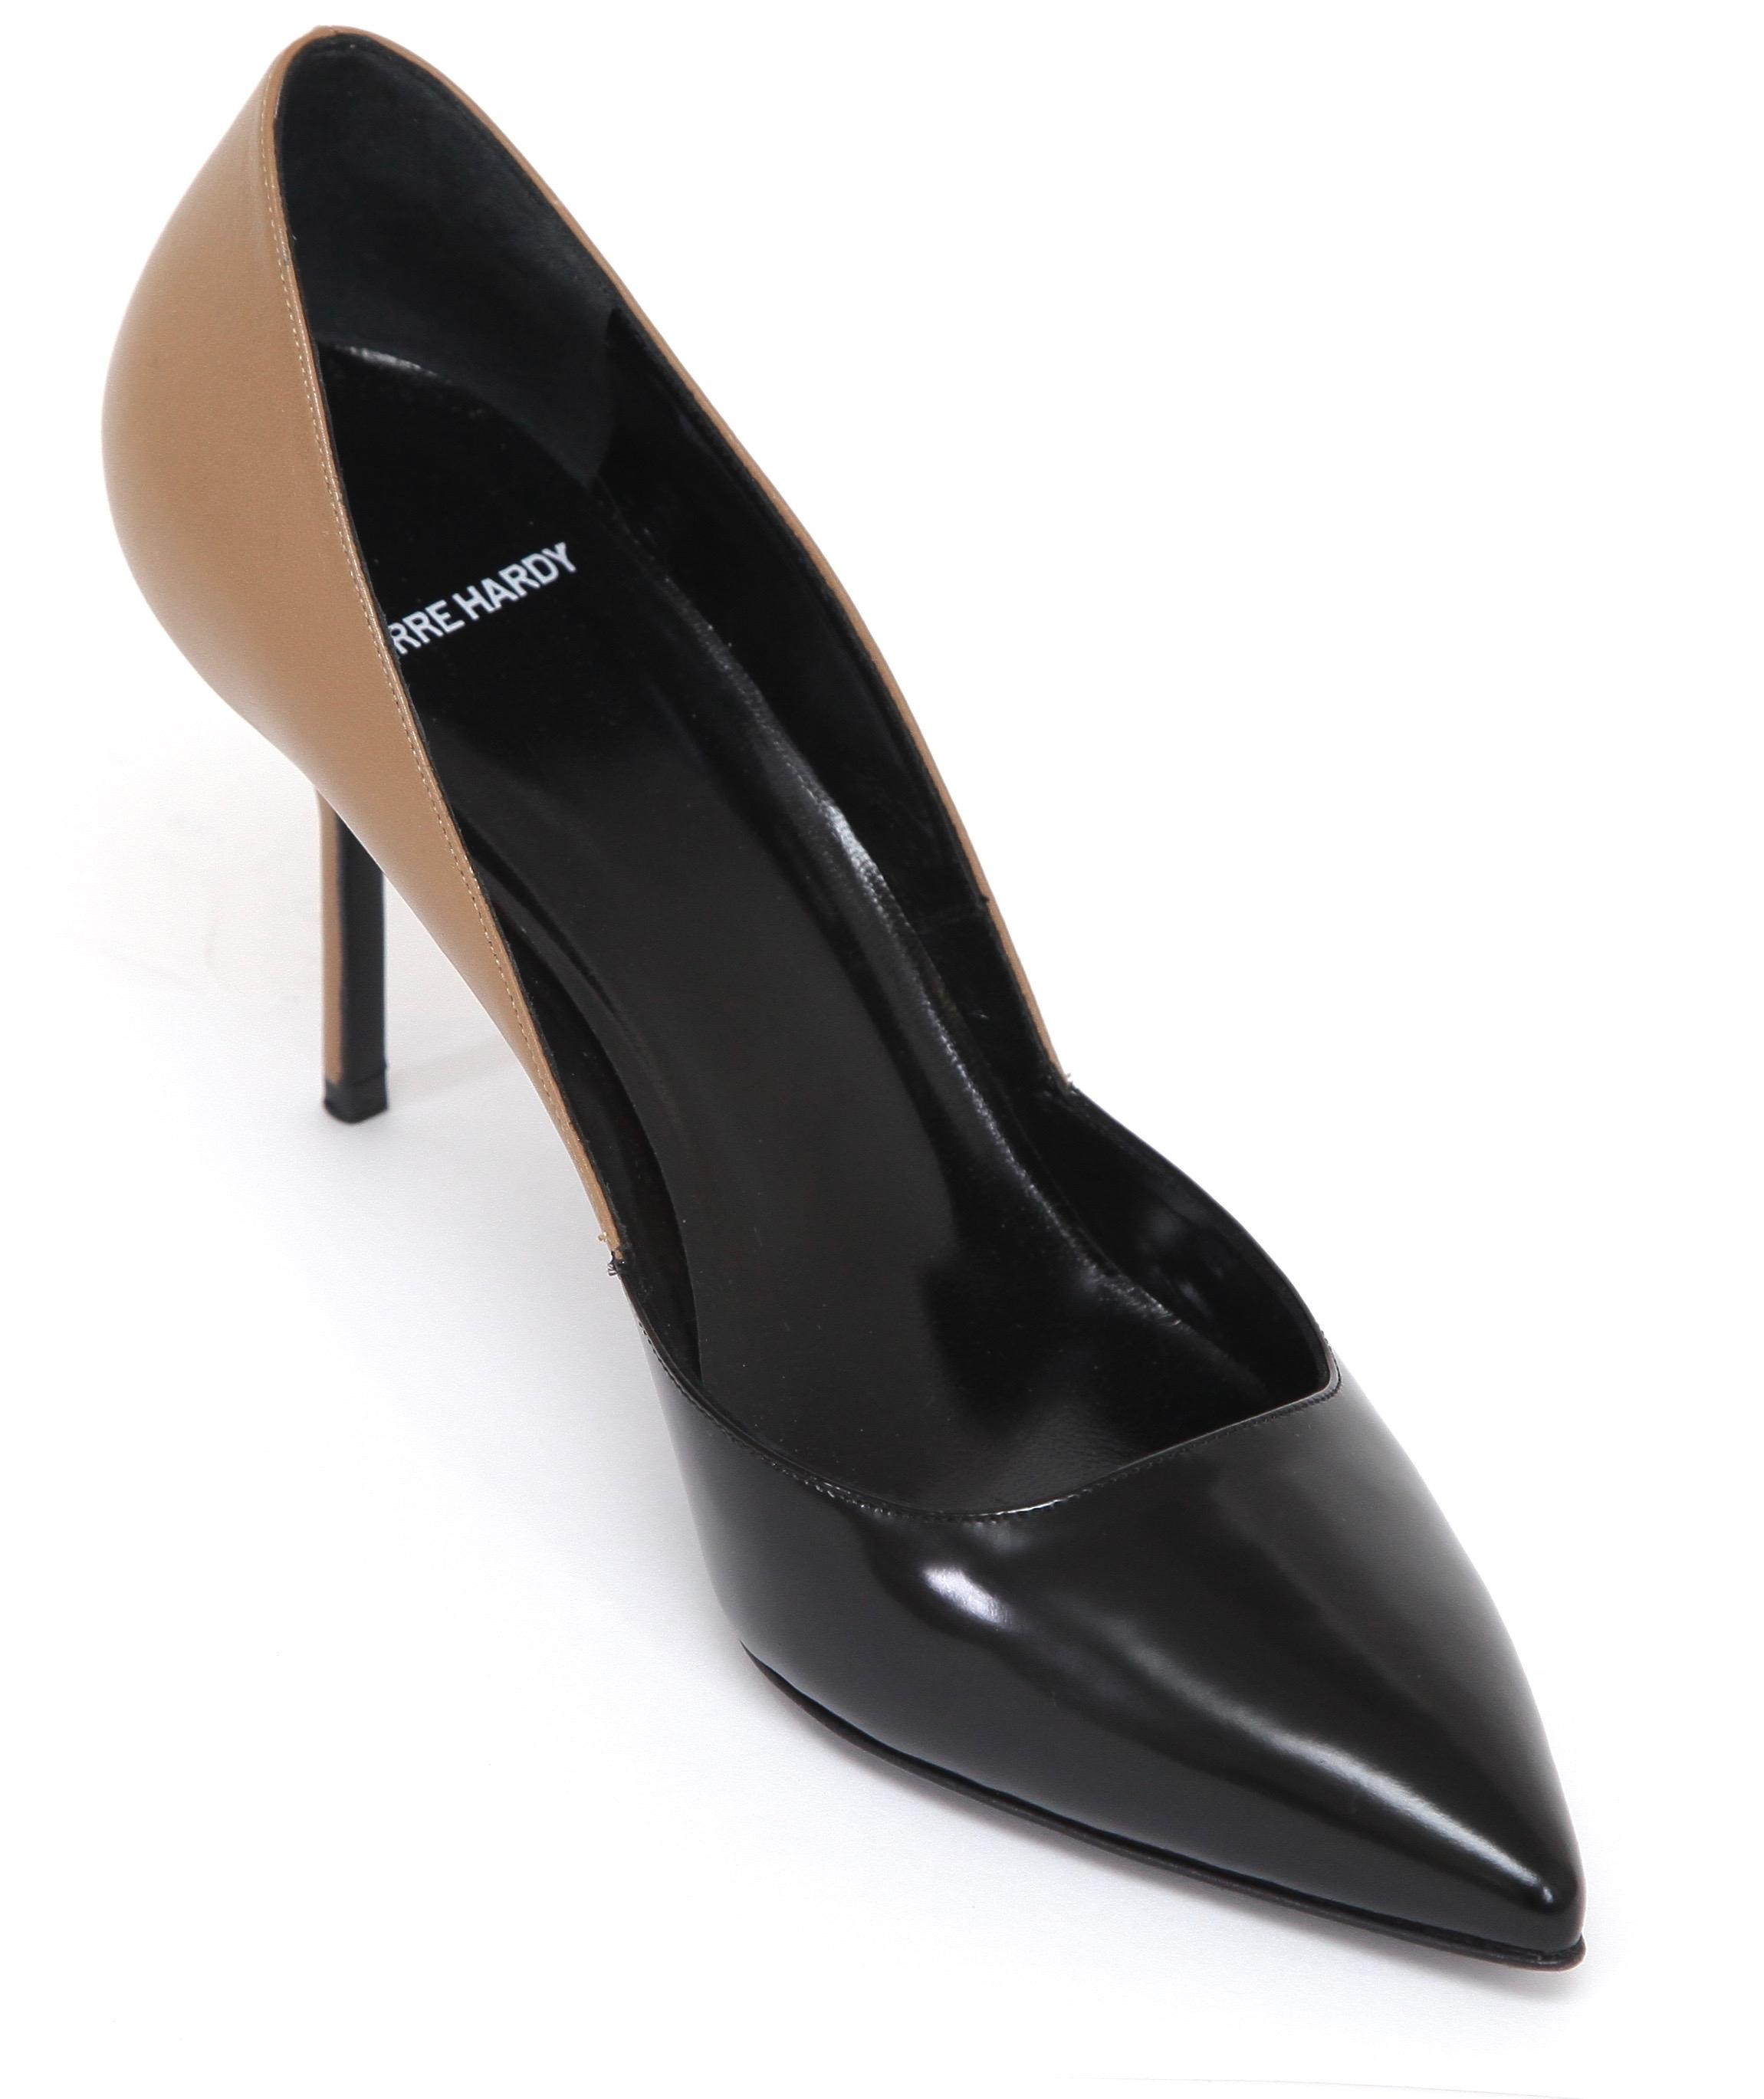 for sale free shipping Pierre Hardy Leather Pointed-Toe Pumps cheap sale clearance wide range of sale online pKmGH